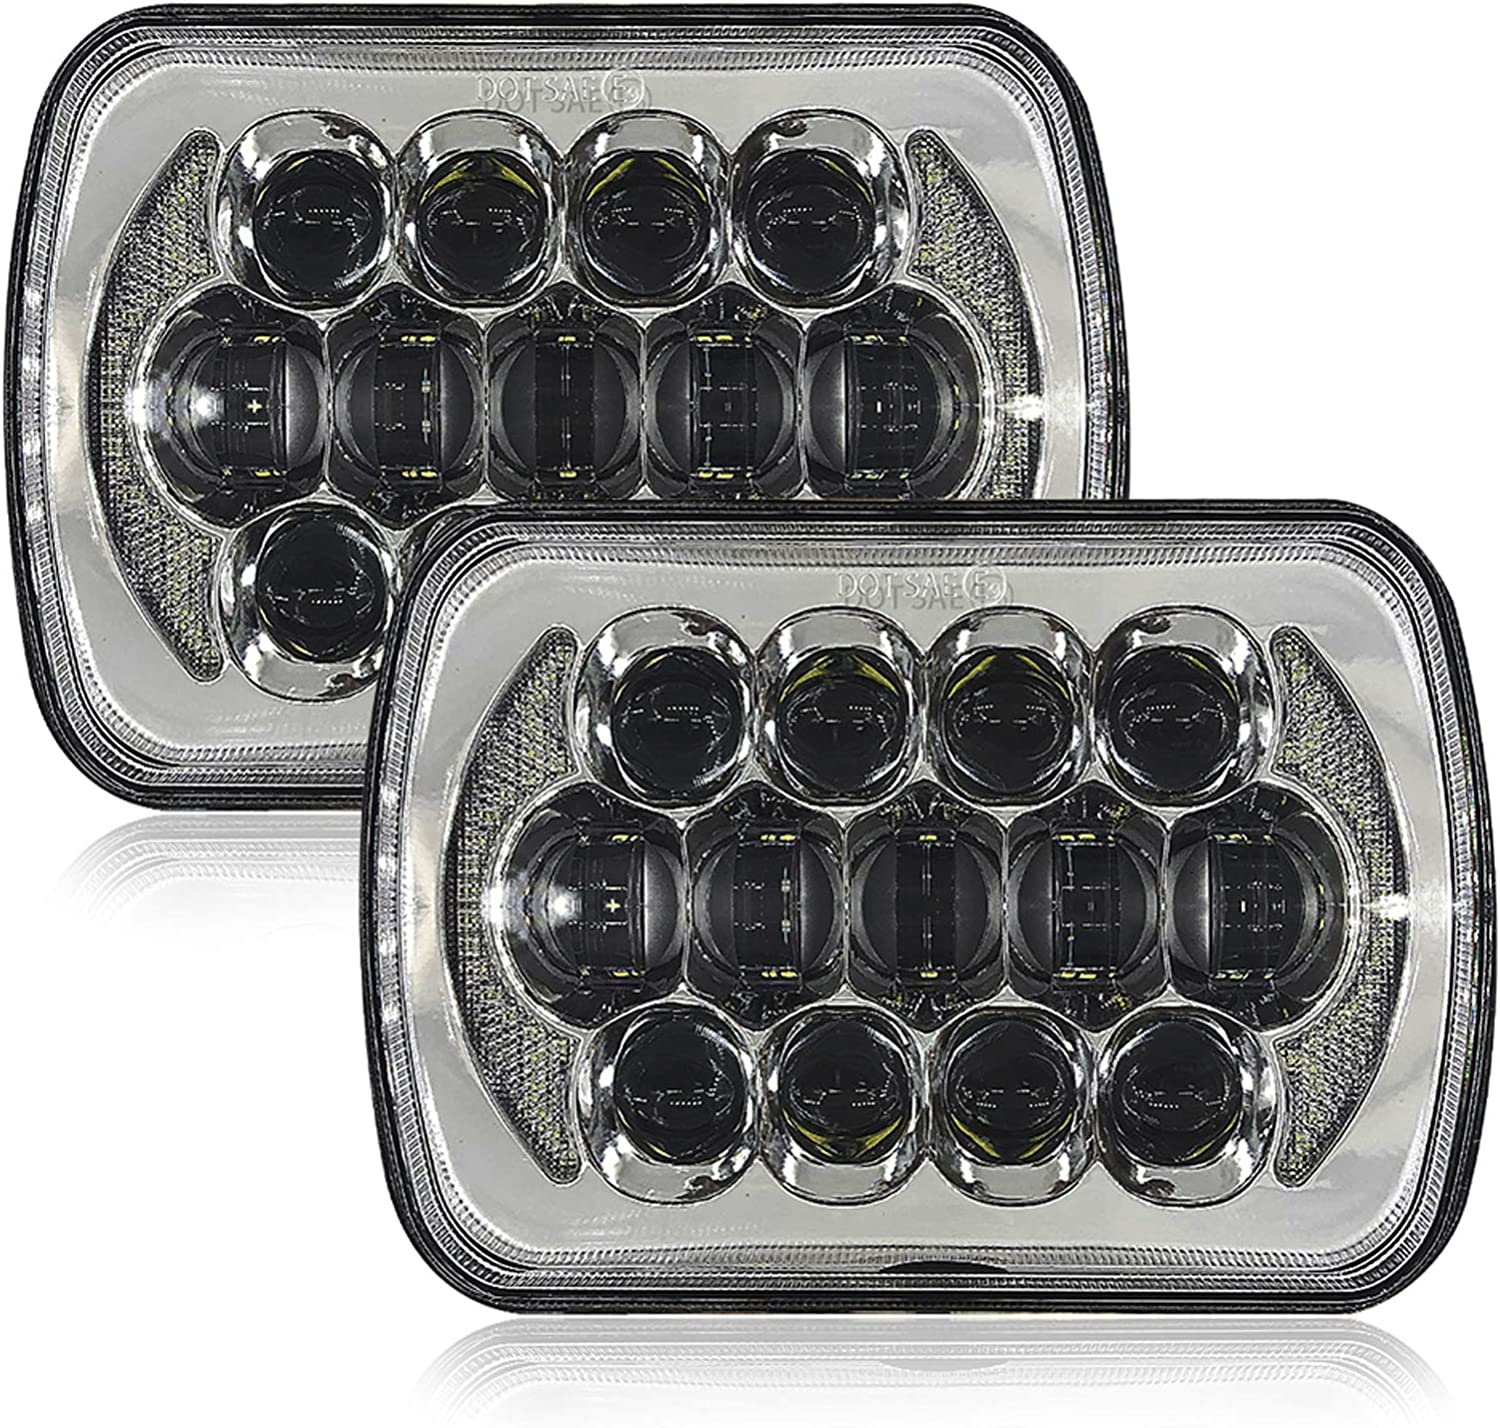 Galvor 7x6 5x7 Inch LED Headlight for Jeep YJ Cherokee XJ H6054 H5054 H6054LL 69822 6052 6053 with High Low Beam DRL Replacement headlight Silver(Pair)